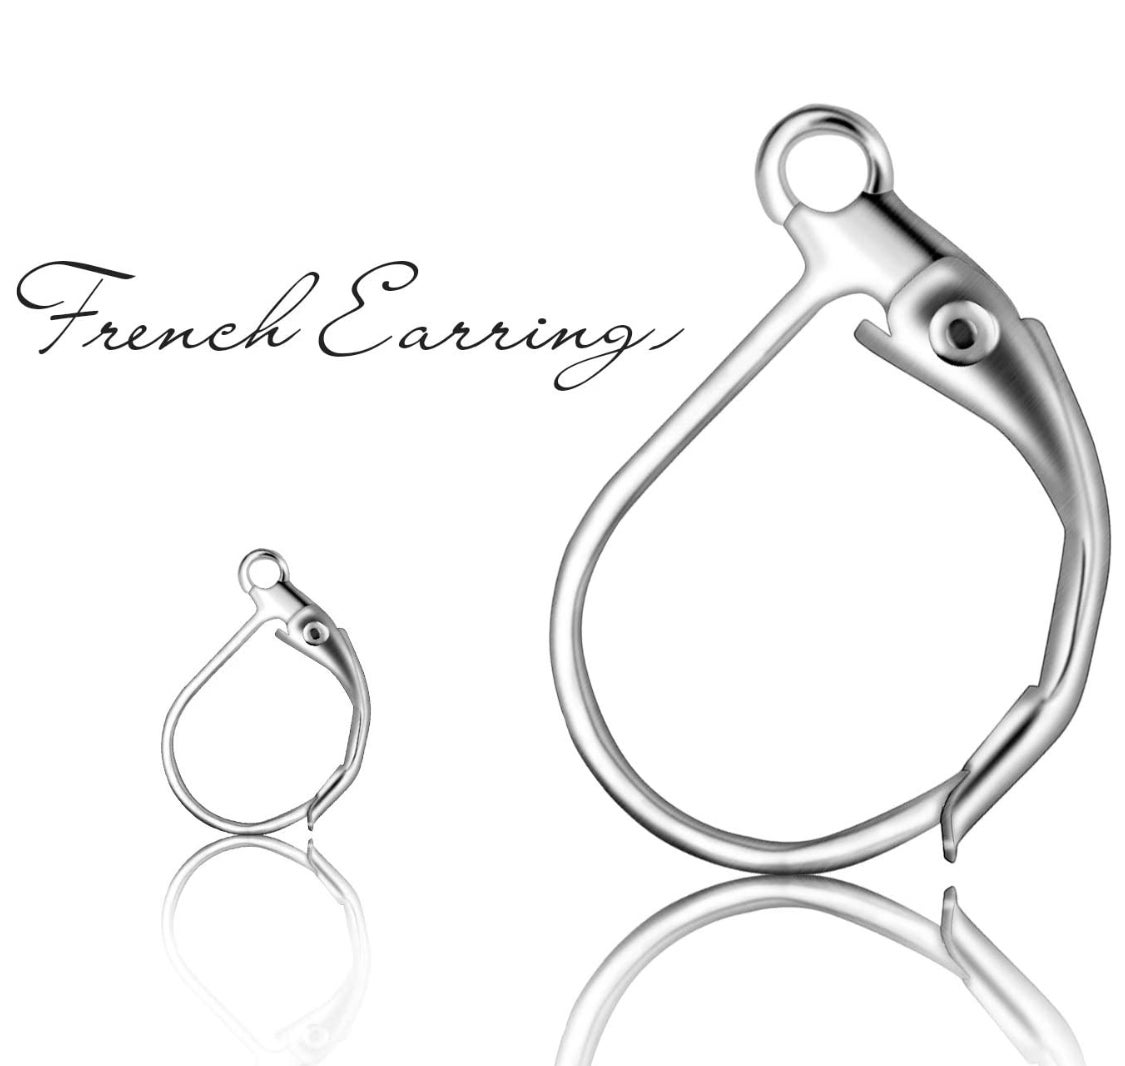 Image of Silver-Plated Closed Clasp Earring Upgrade (per pair)